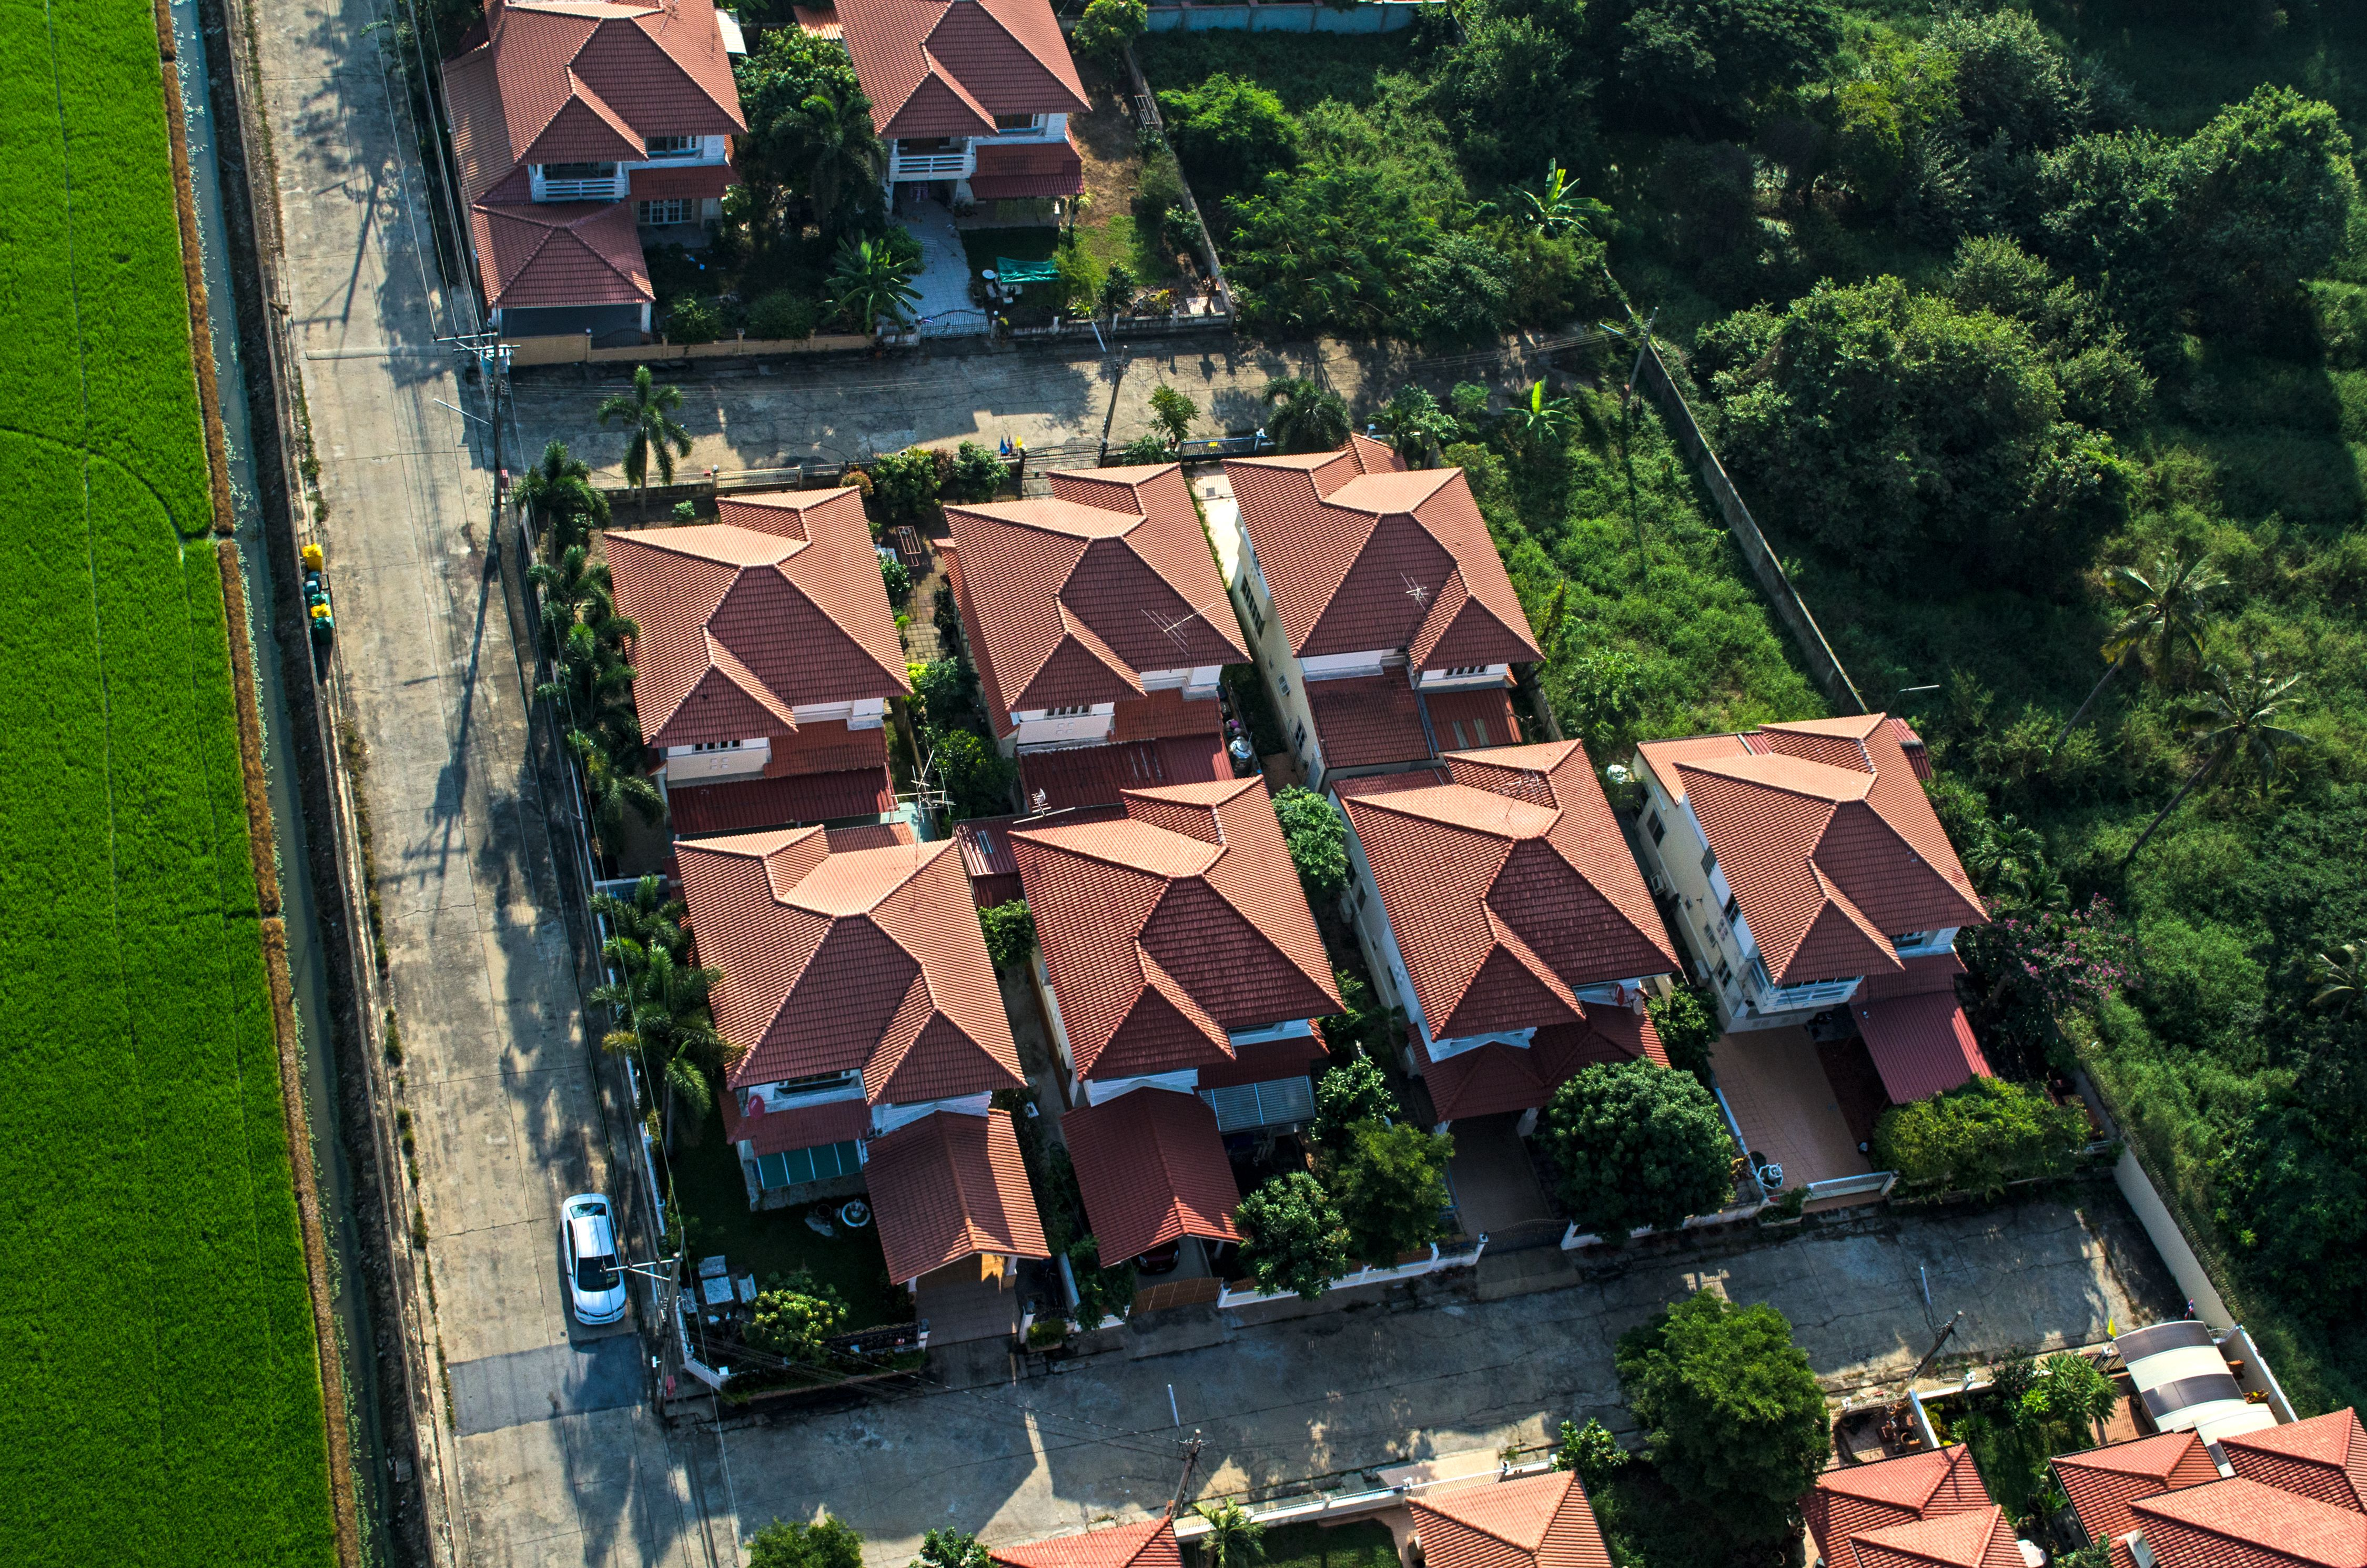 Birdview of residential housing are